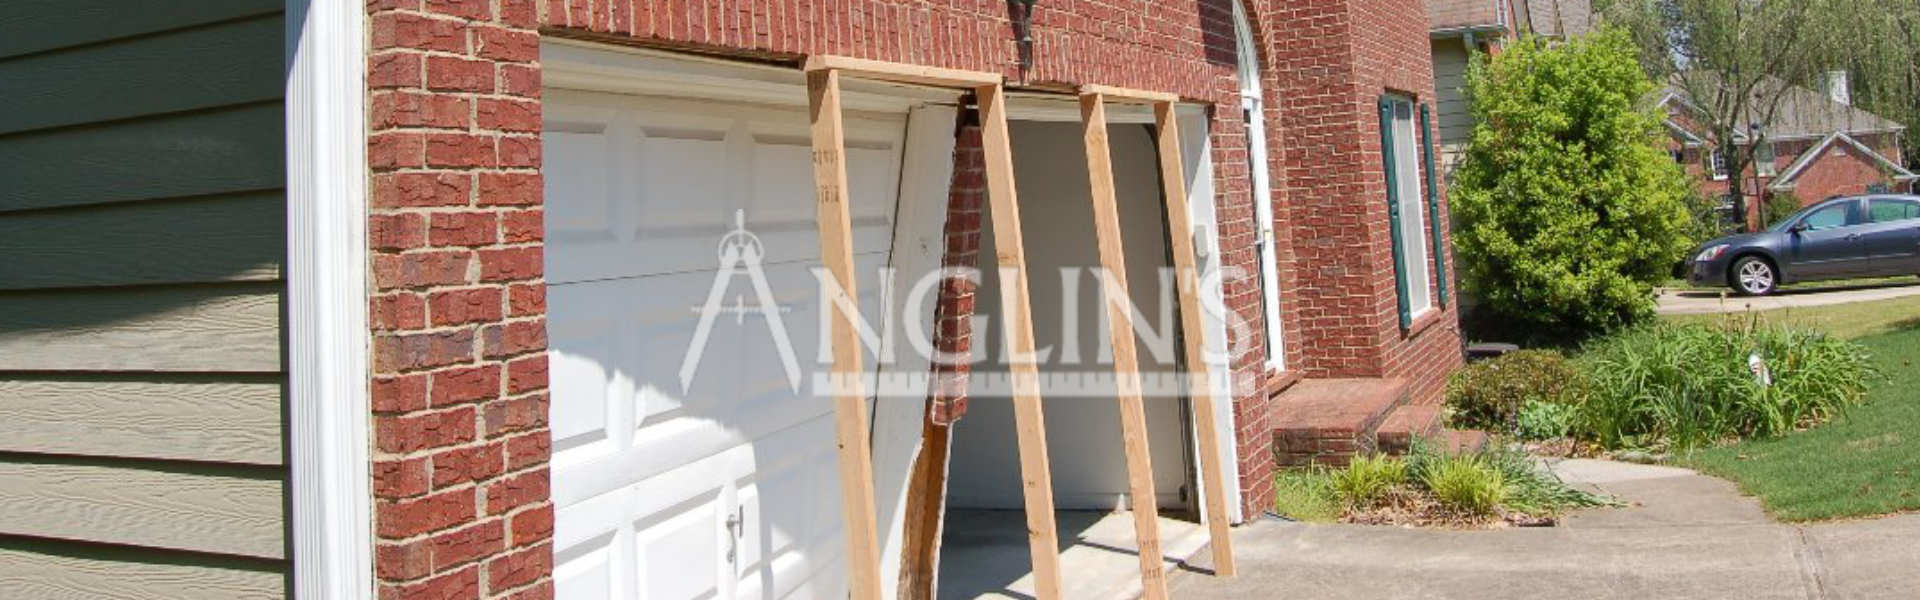 two wooden support frames in front of garage doors which need repair